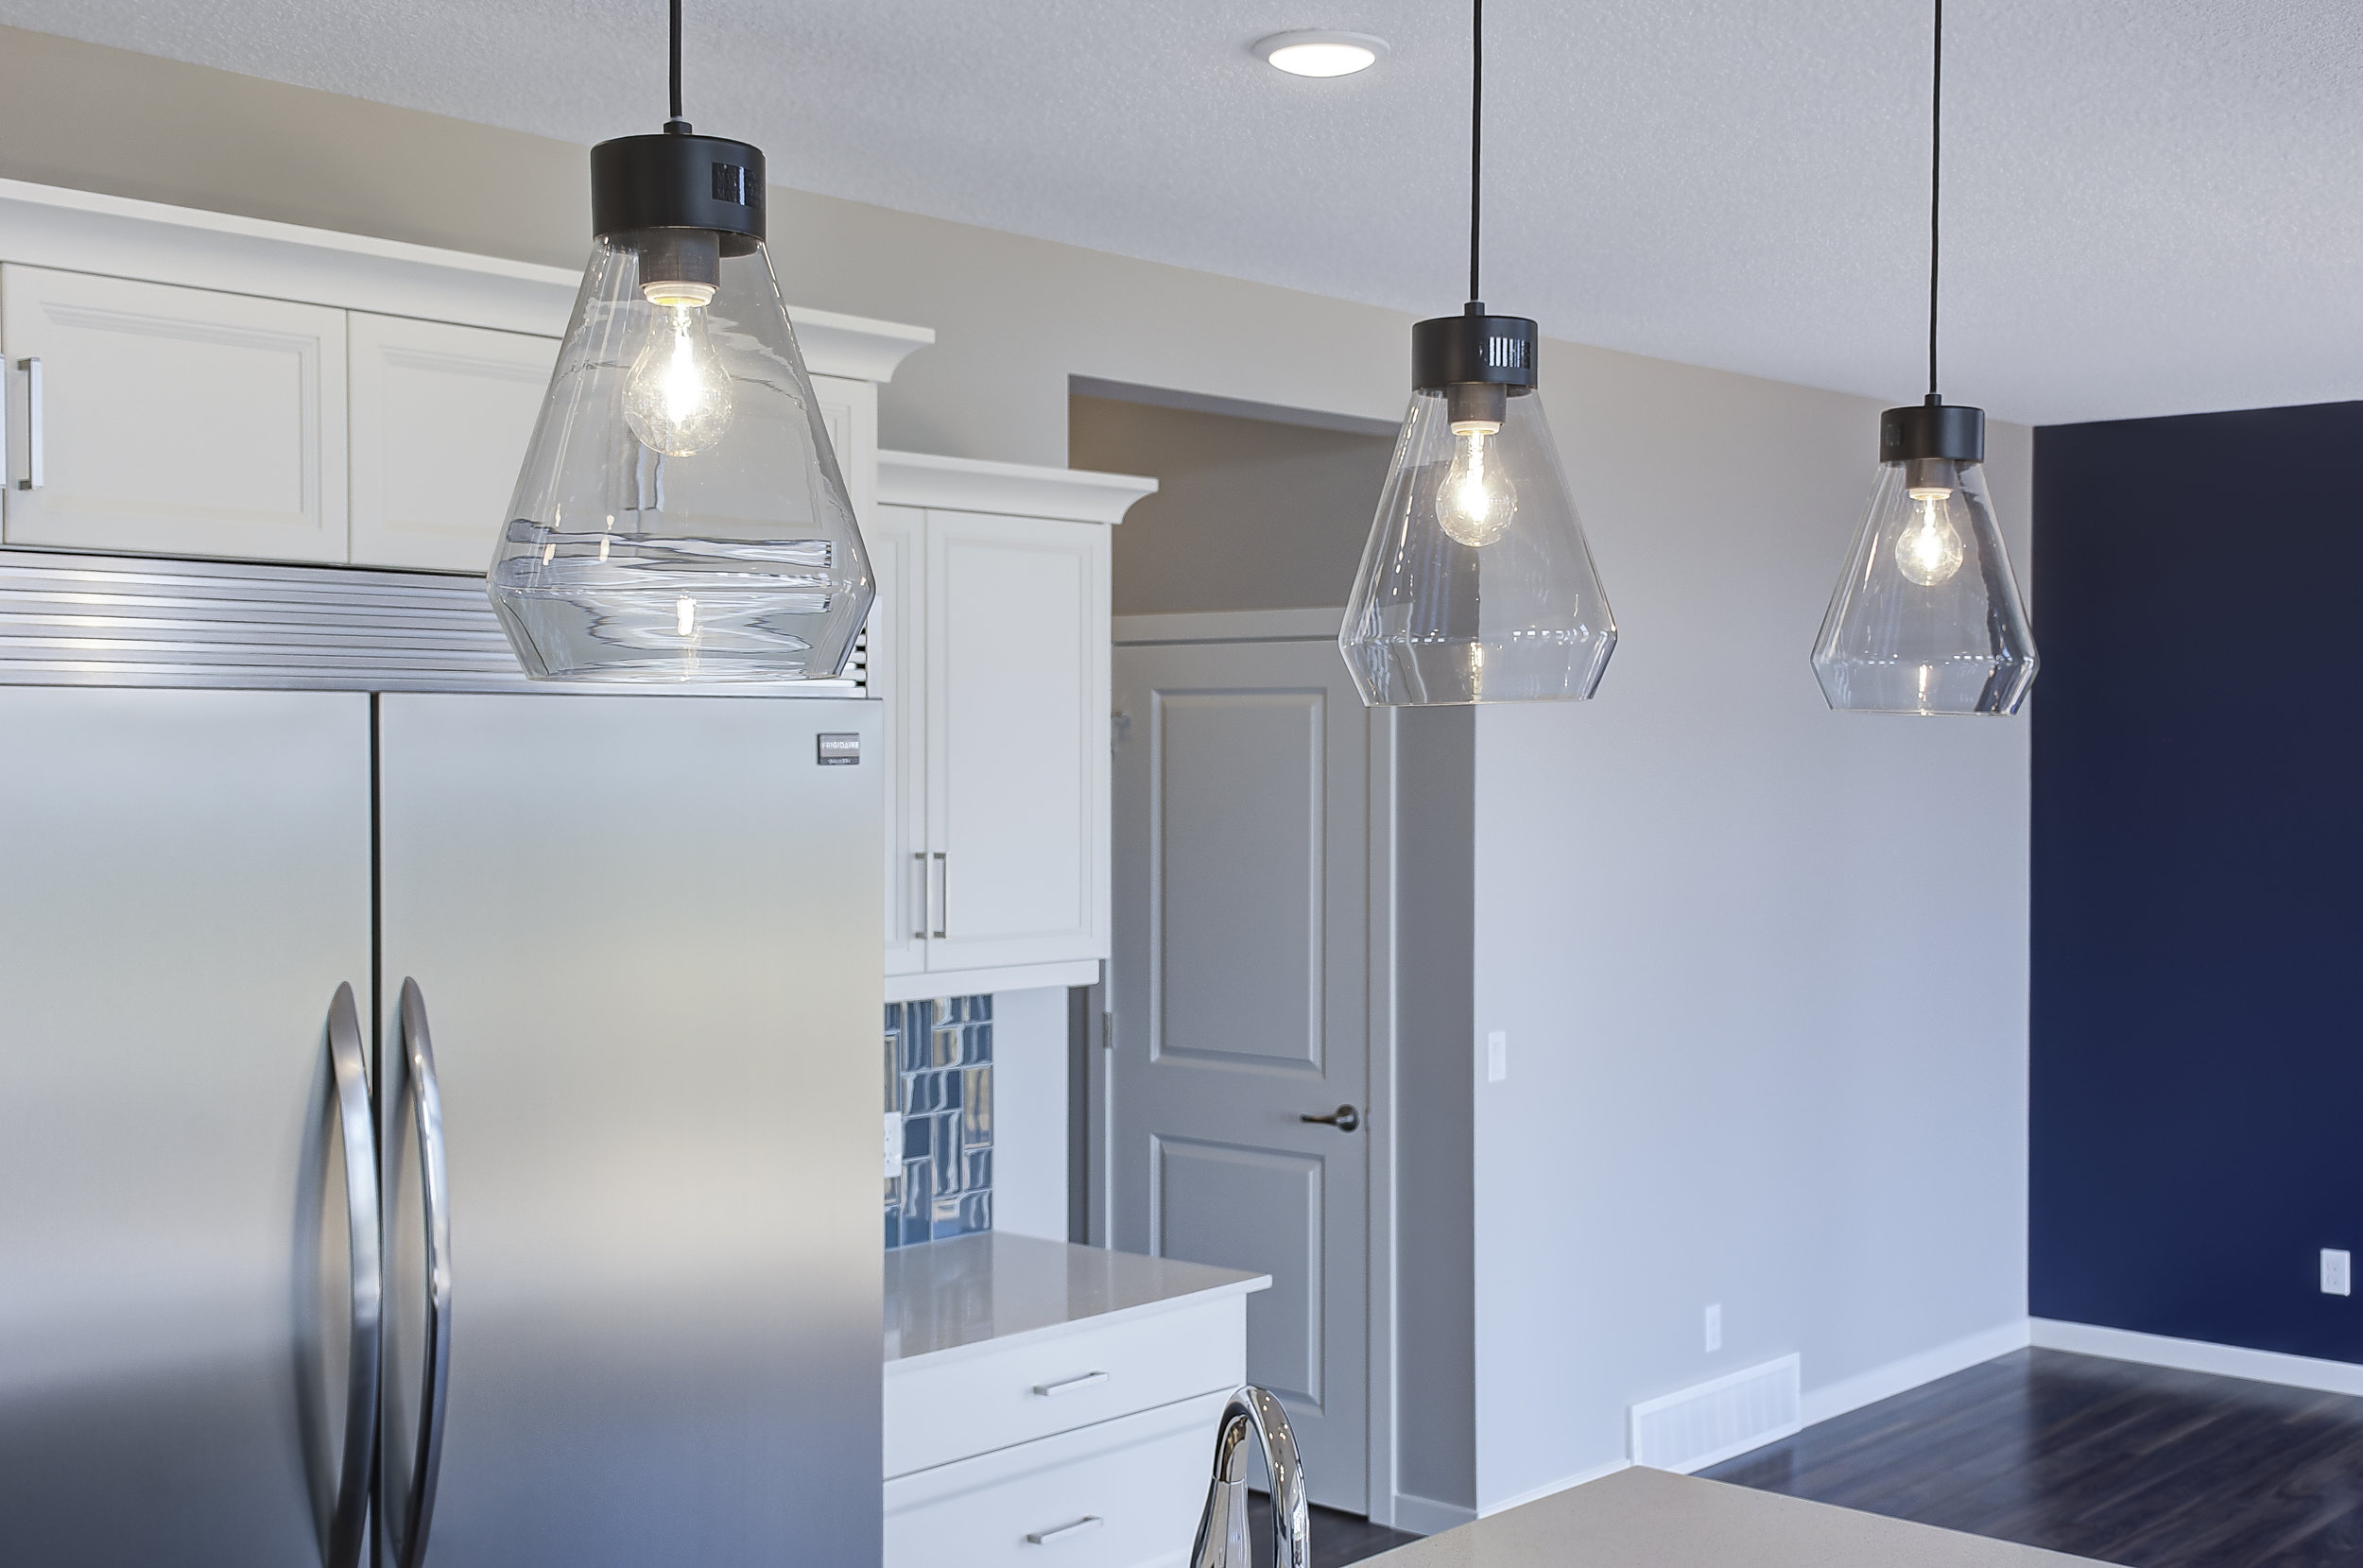 11-main kitchen pendant lights-1.jpg